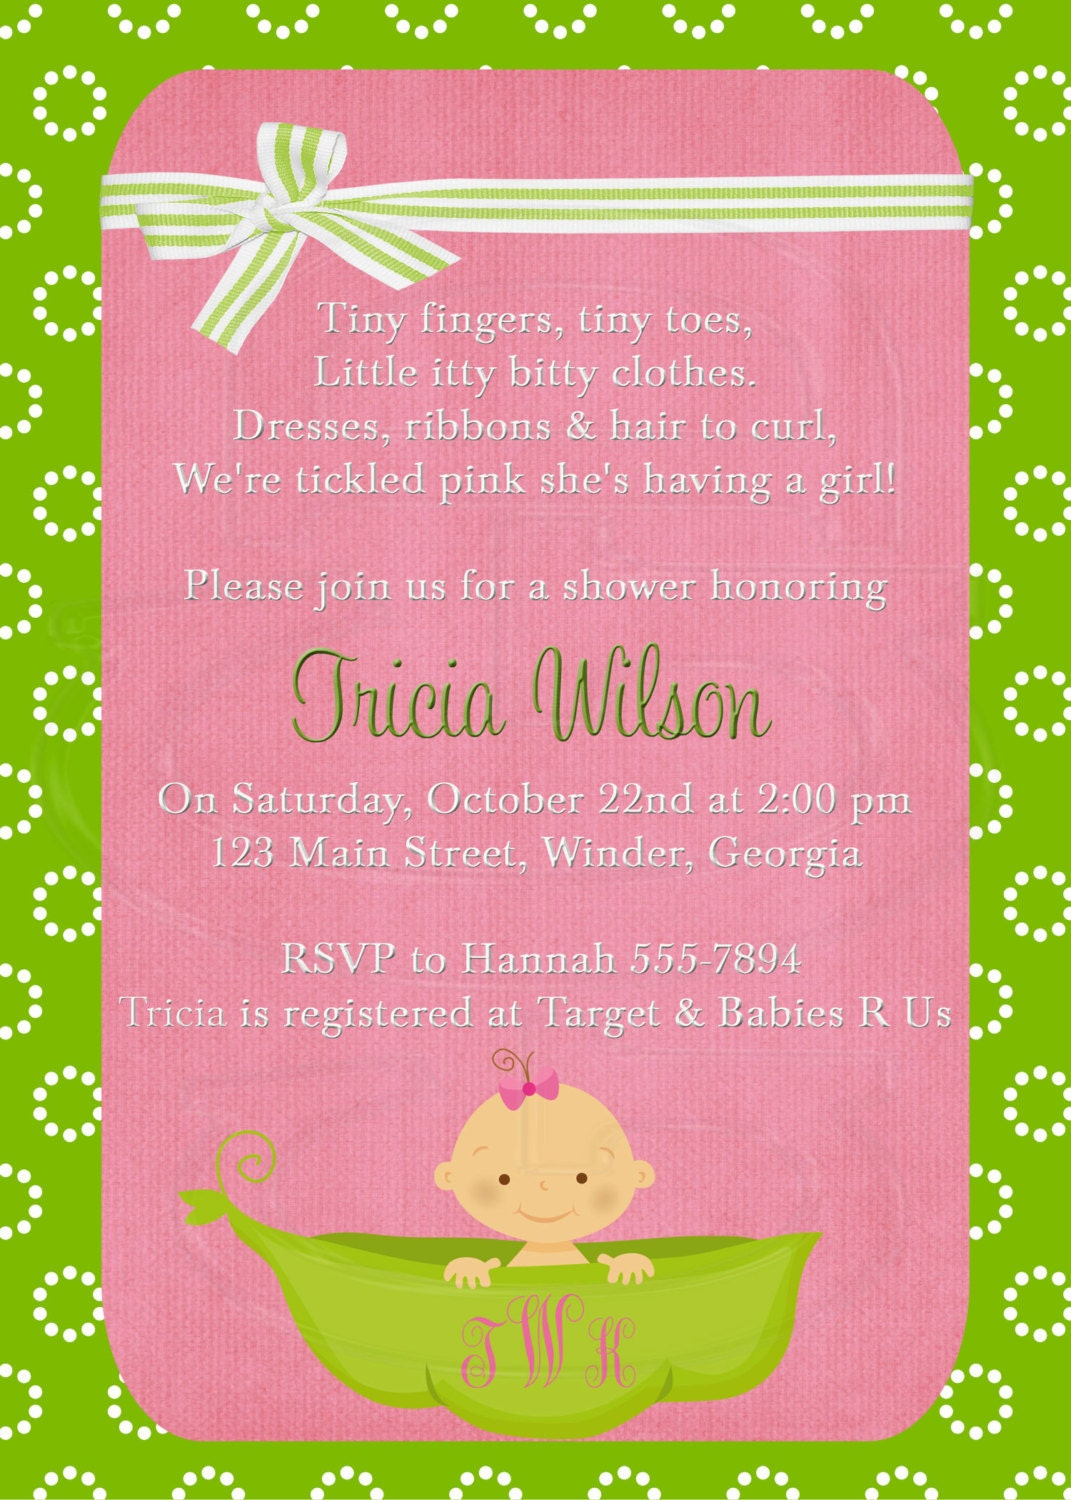 baby shower invitation or baby sprinkle for 2nd or 3rd child pea in